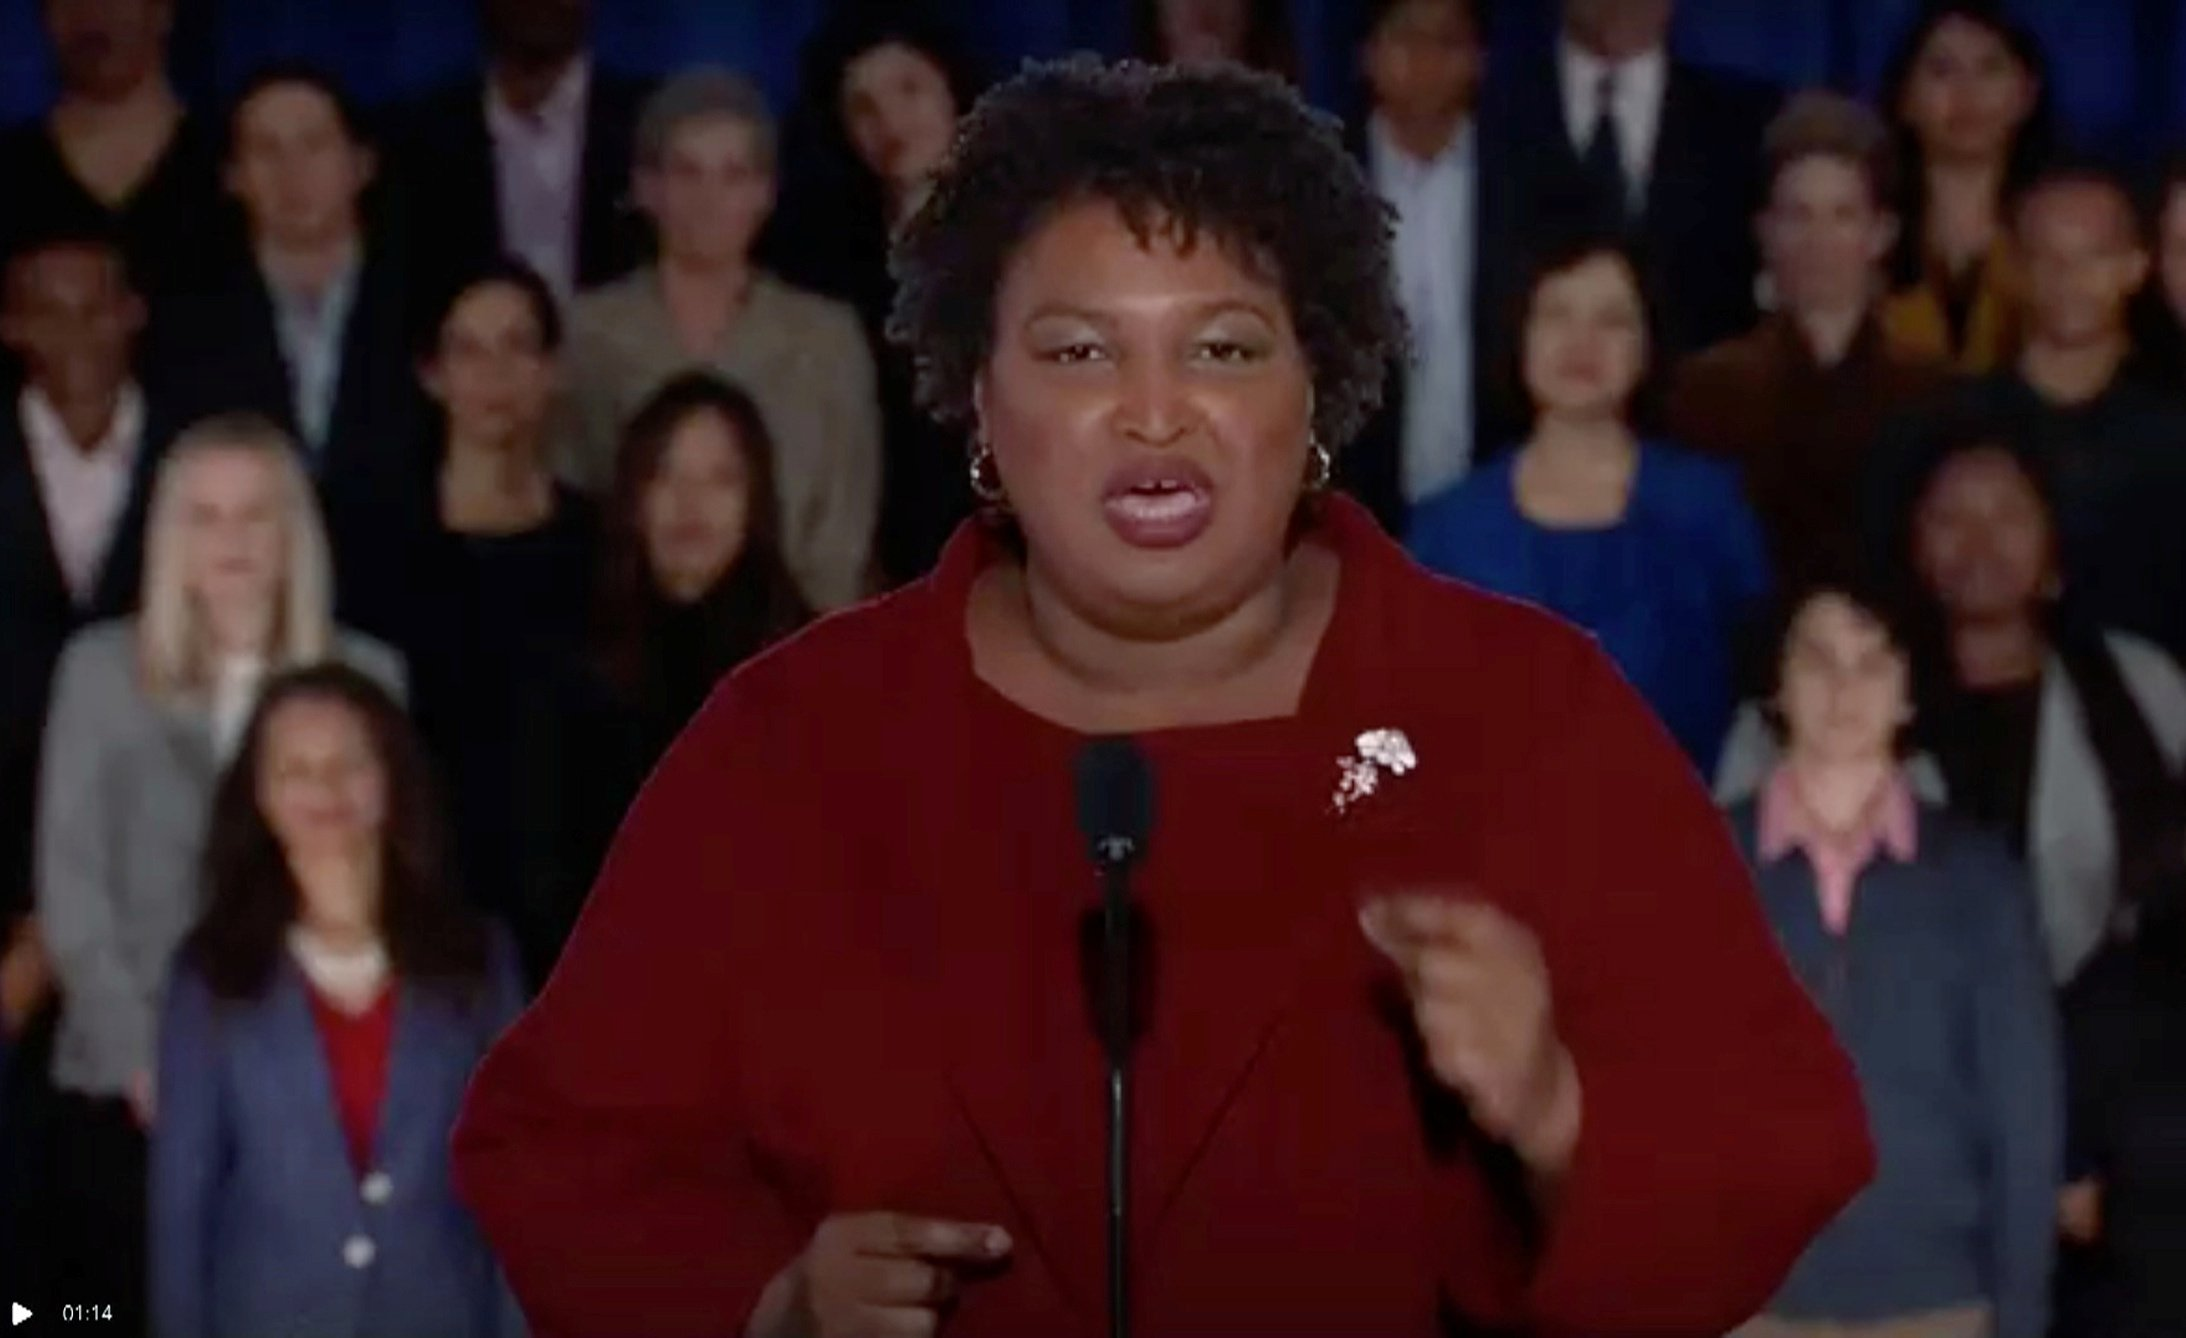 Former Georgia gubernatorial candidate Stacey Abrams delivers the Democratic response to the U.S. President Donald Trump's State of the Union address in this still frame taken from video, in Washington, U.S., February 5, 2019. REUTERS/Reuters TV